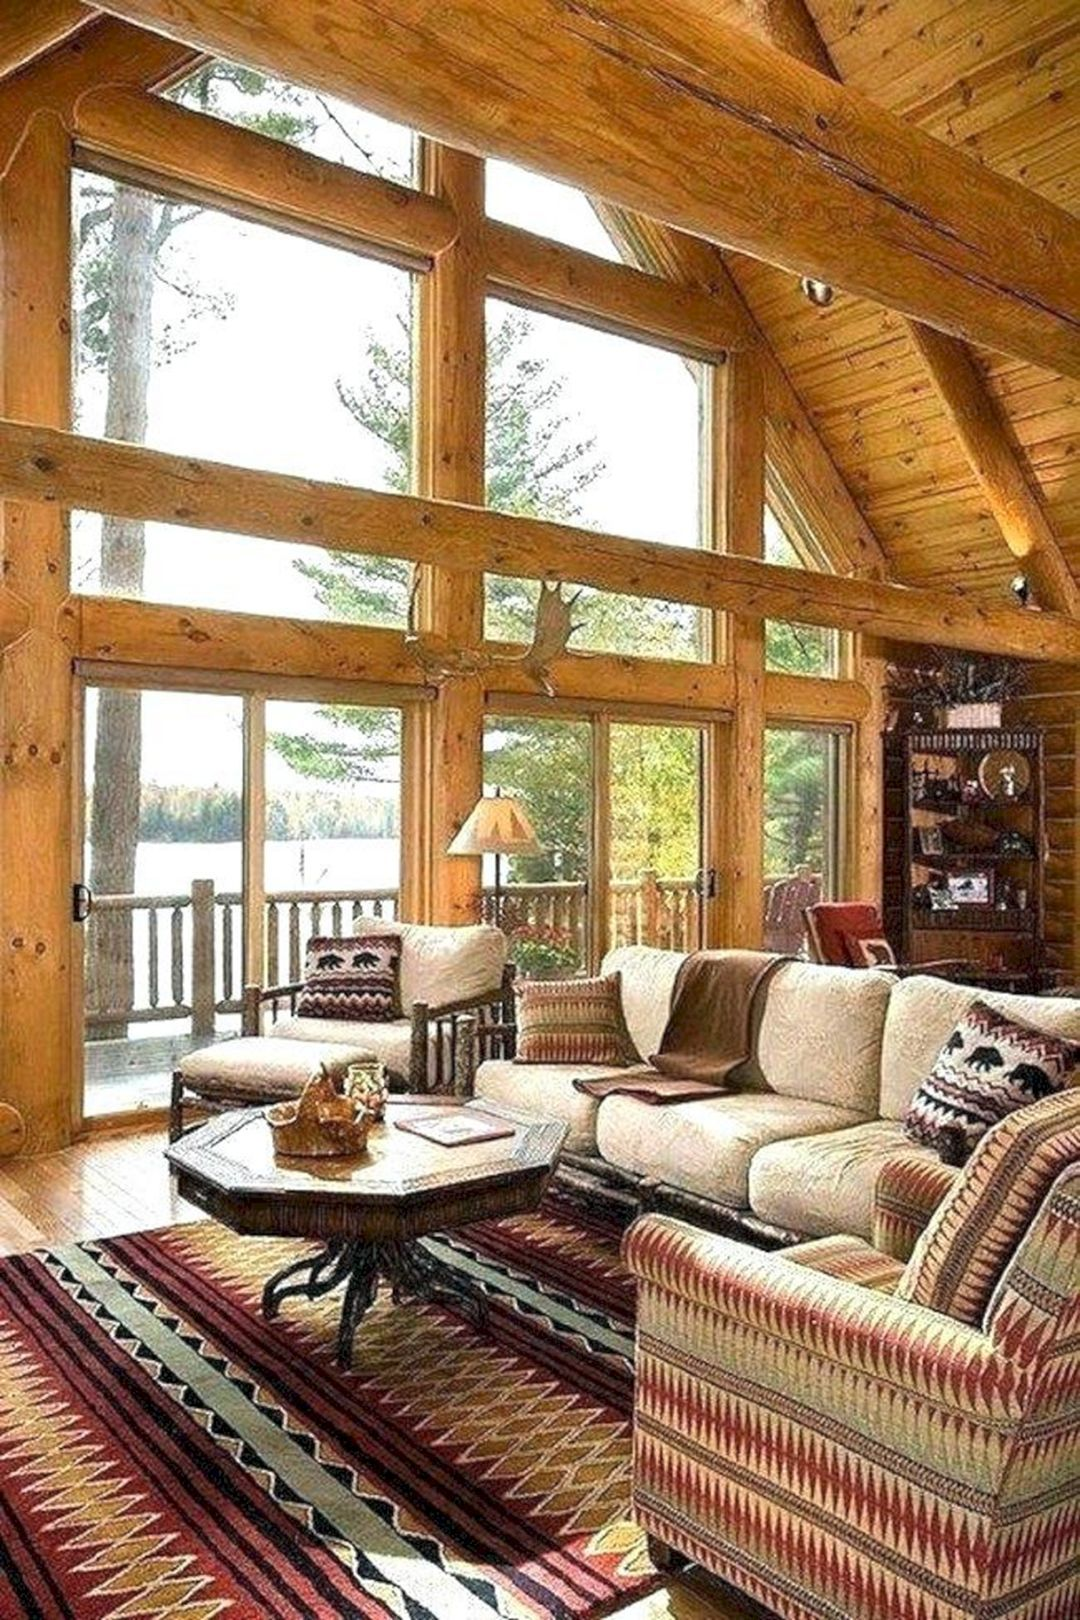 Top 10 Small Log Cabin Ideas With Awesome Decoration Log Home Interiors Cabin Interior Design Log Cabin Decor